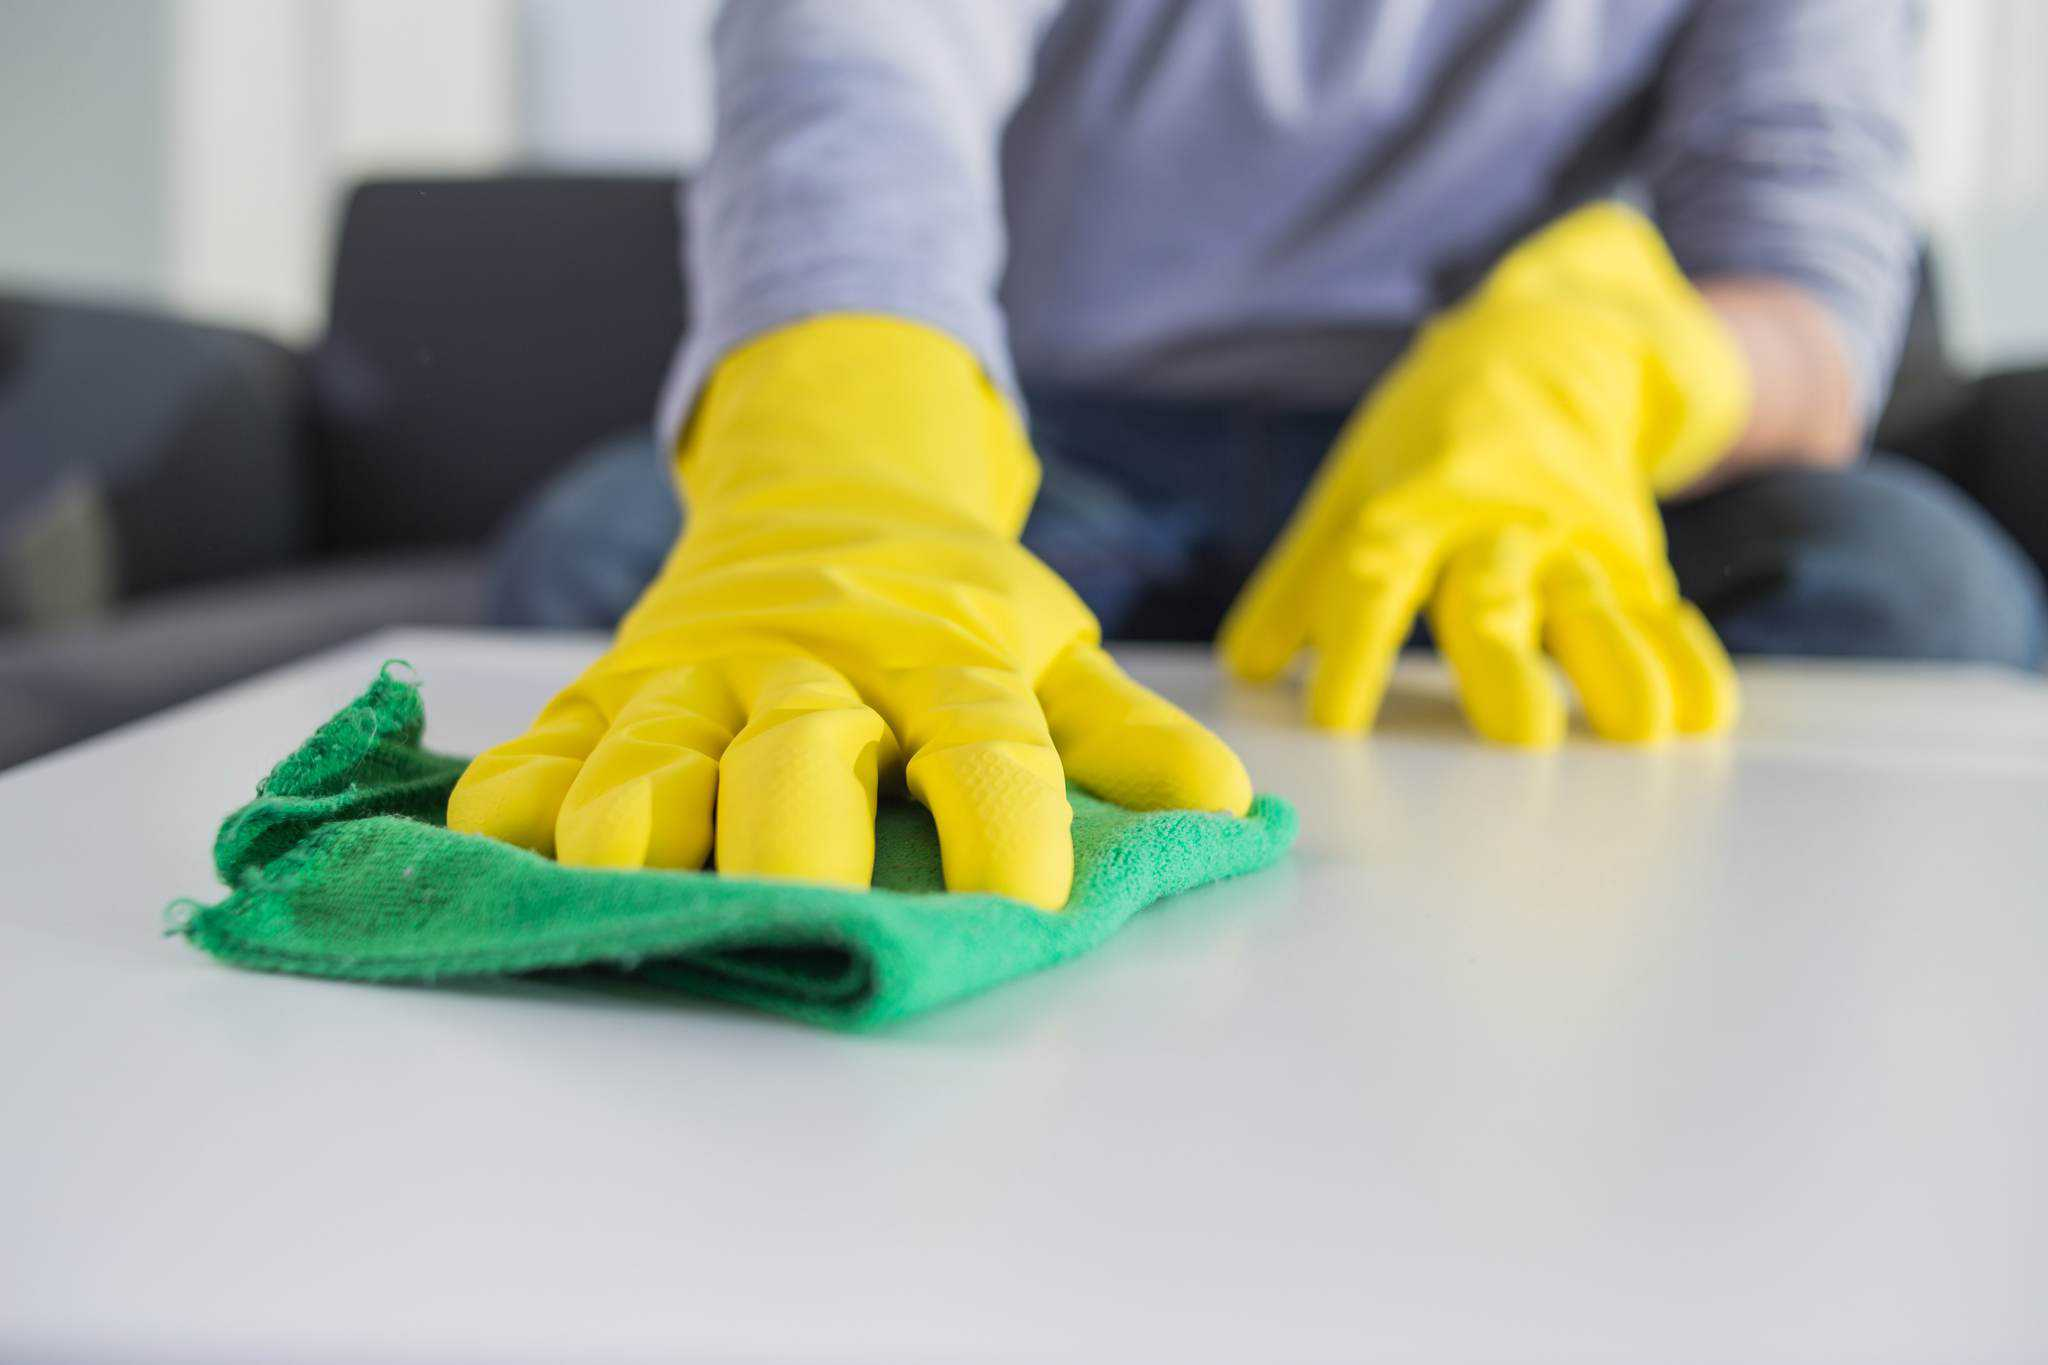 'tile cleaning companies near me